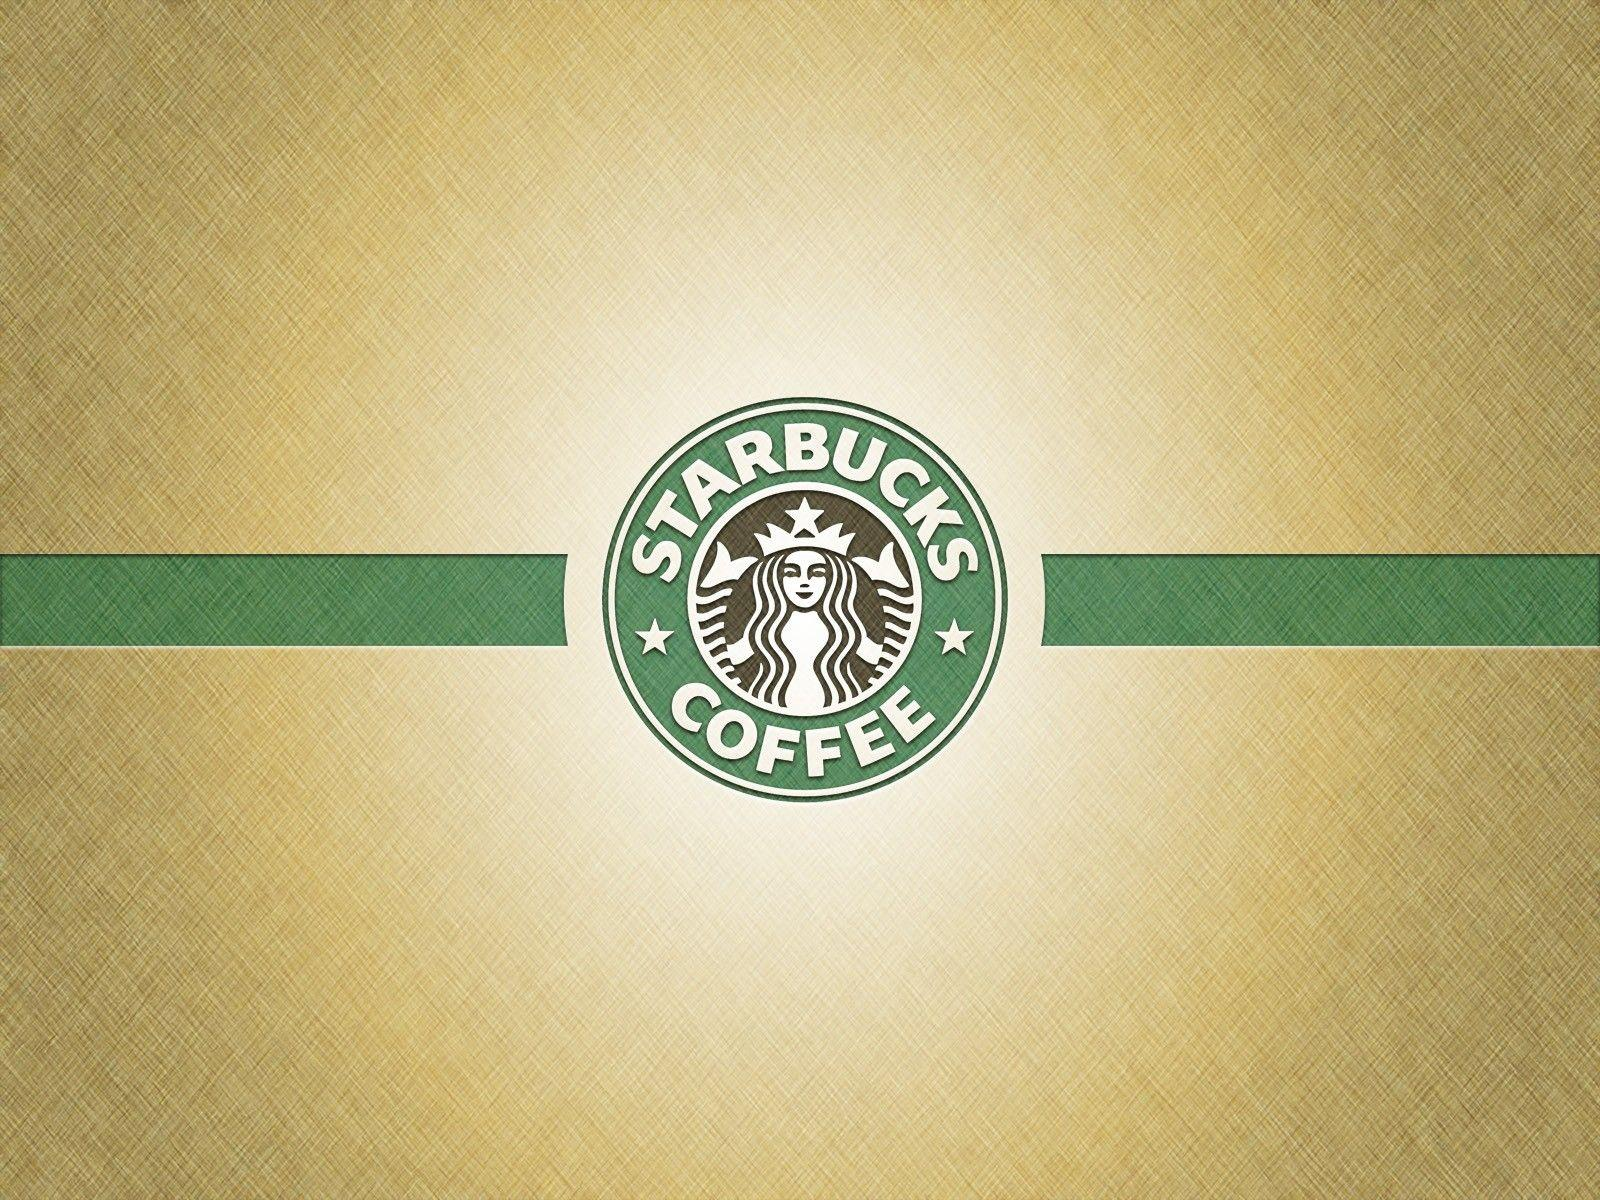 Starbucks Coffee Wallpaper | Wallpaper Download